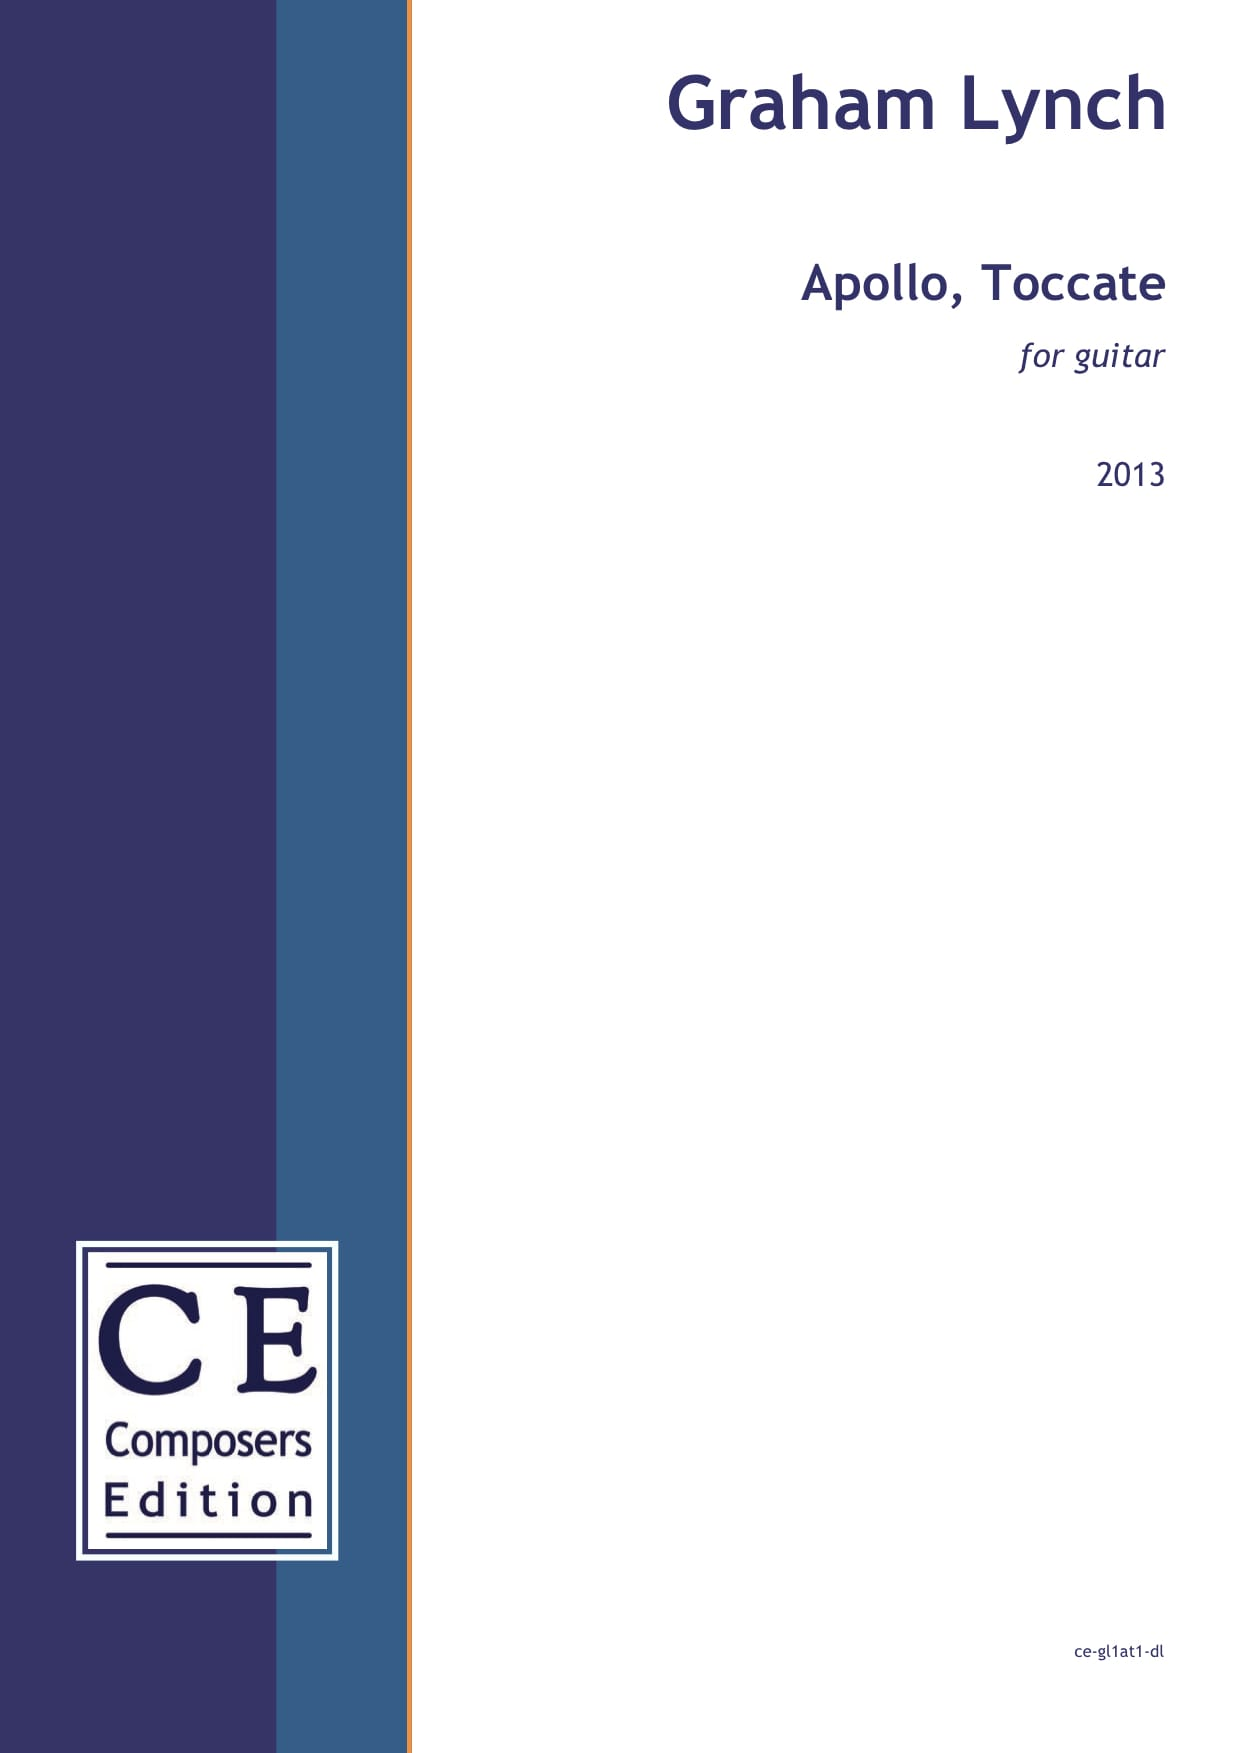 Graham Lynch: Apollo, Toccate for guitar